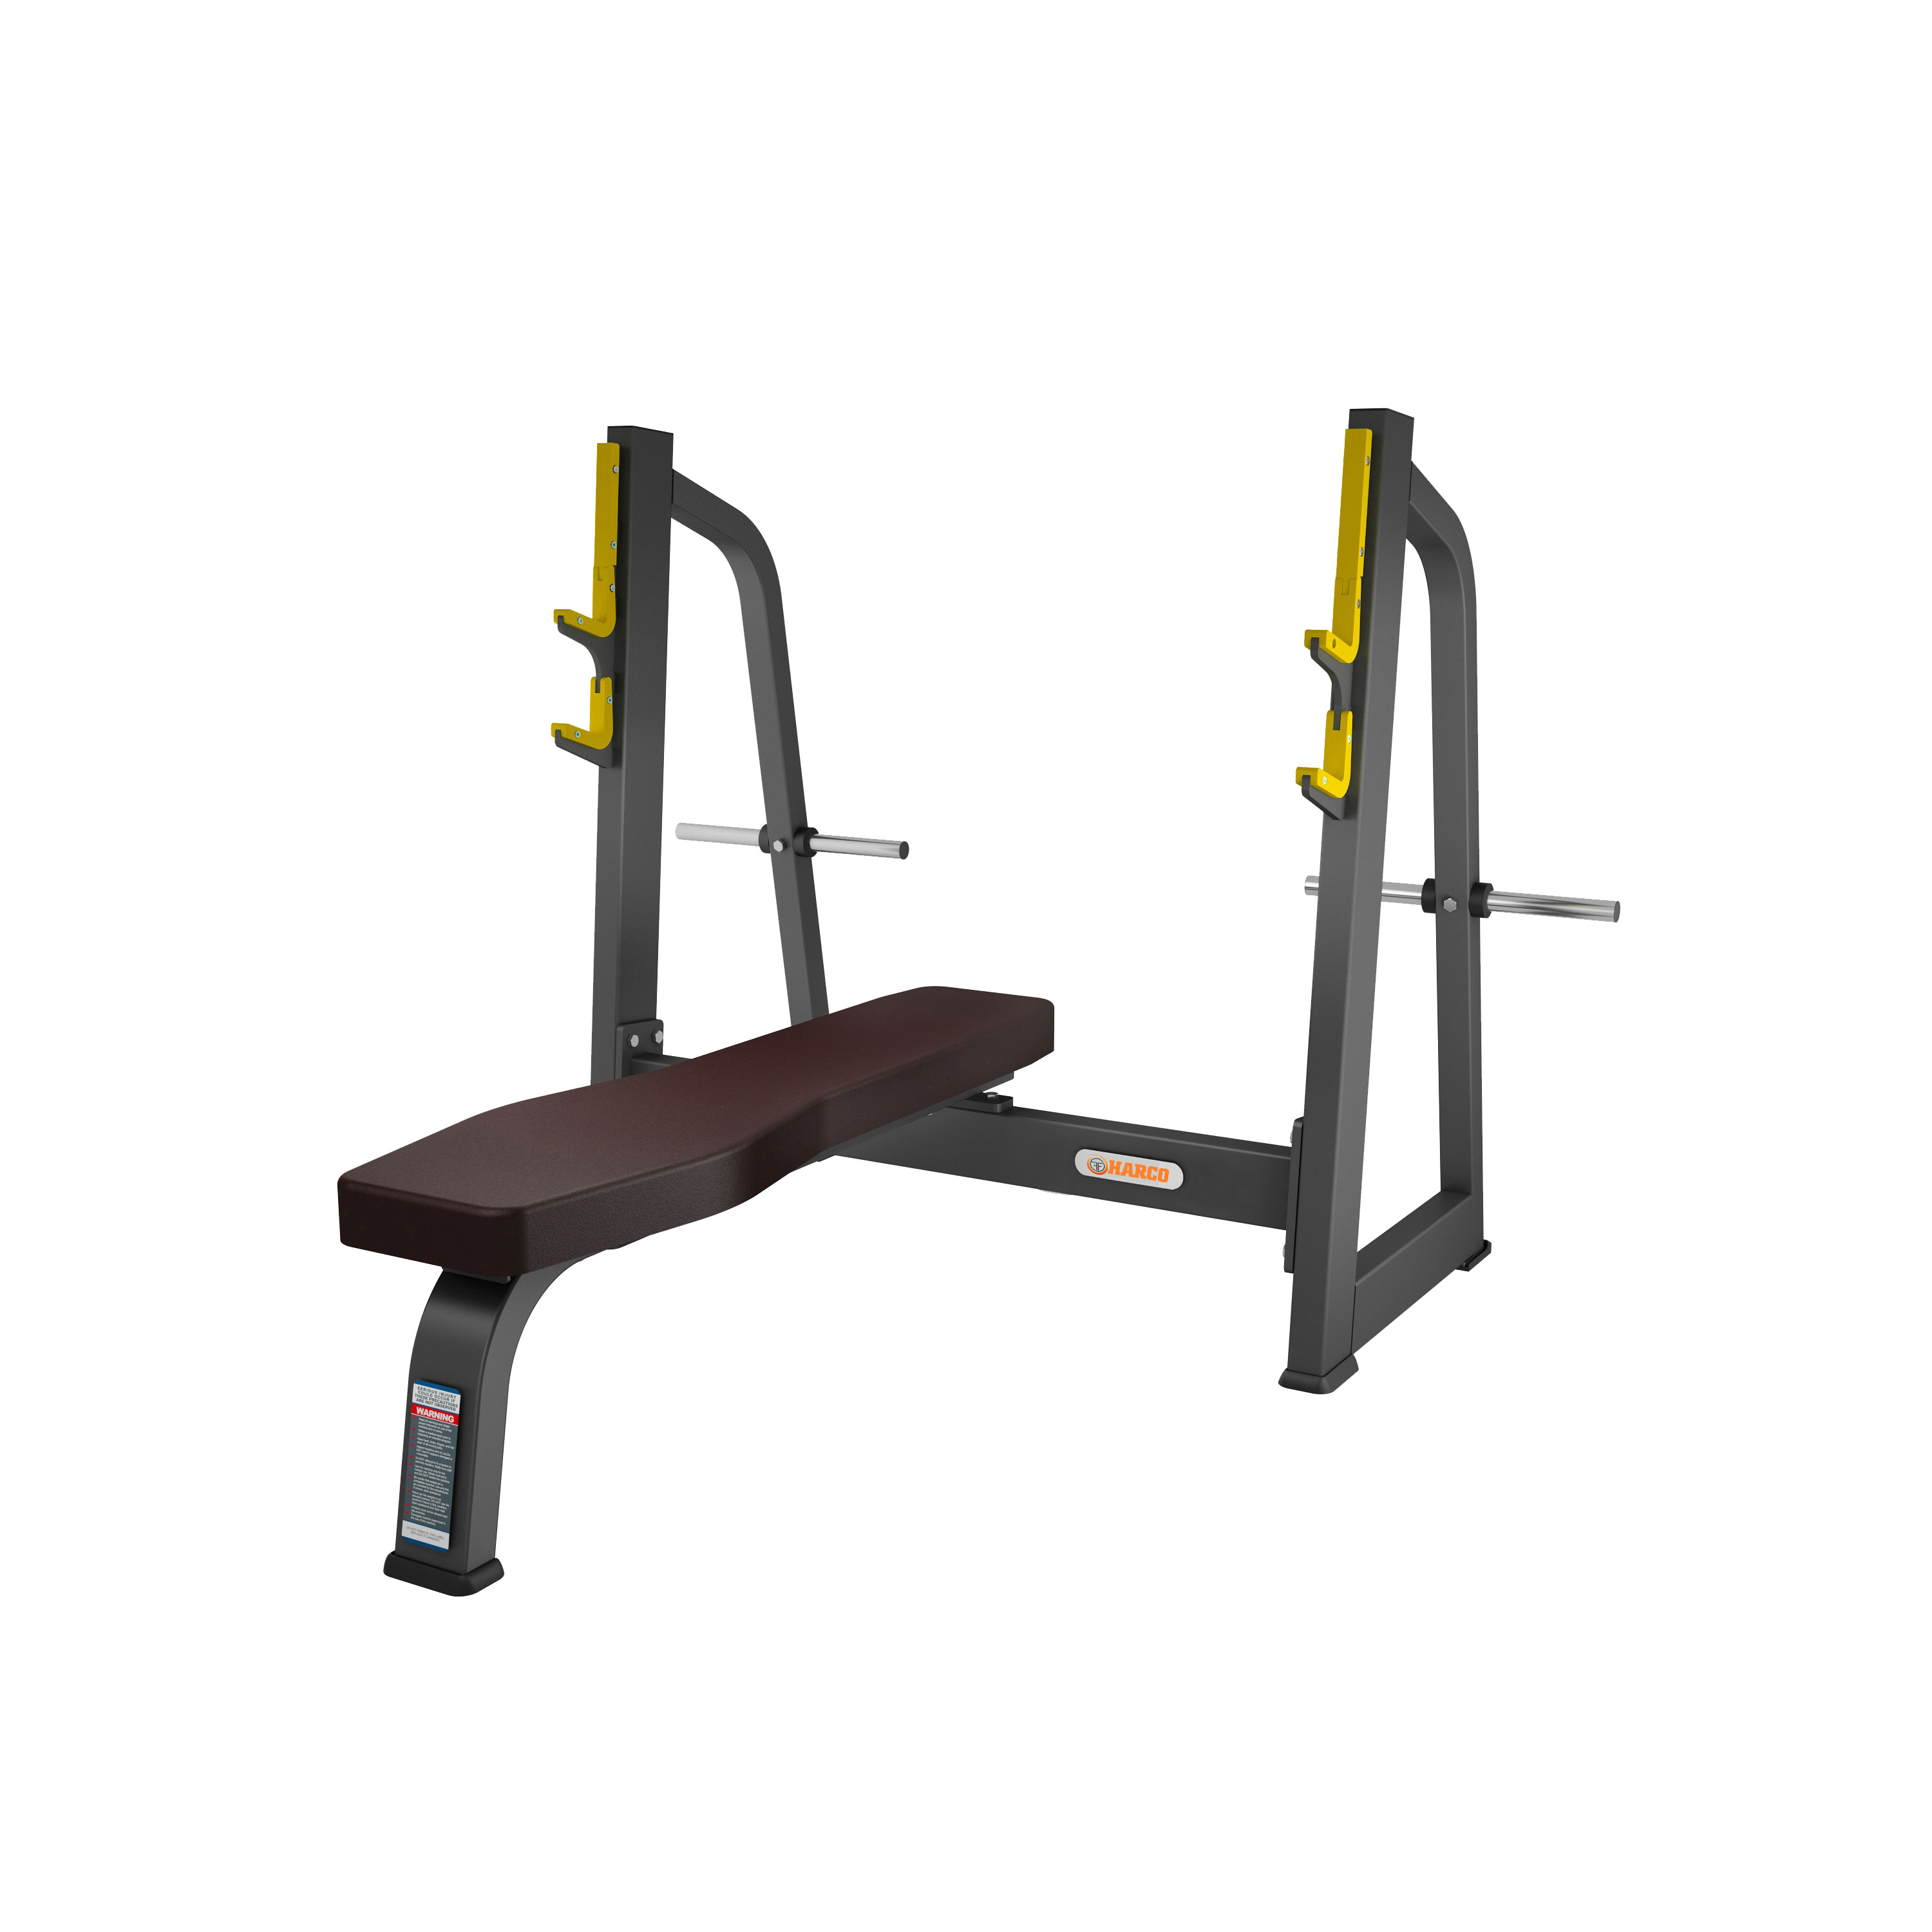 SRTB-43 OLYMPIC FLAT BENCH – Harco India